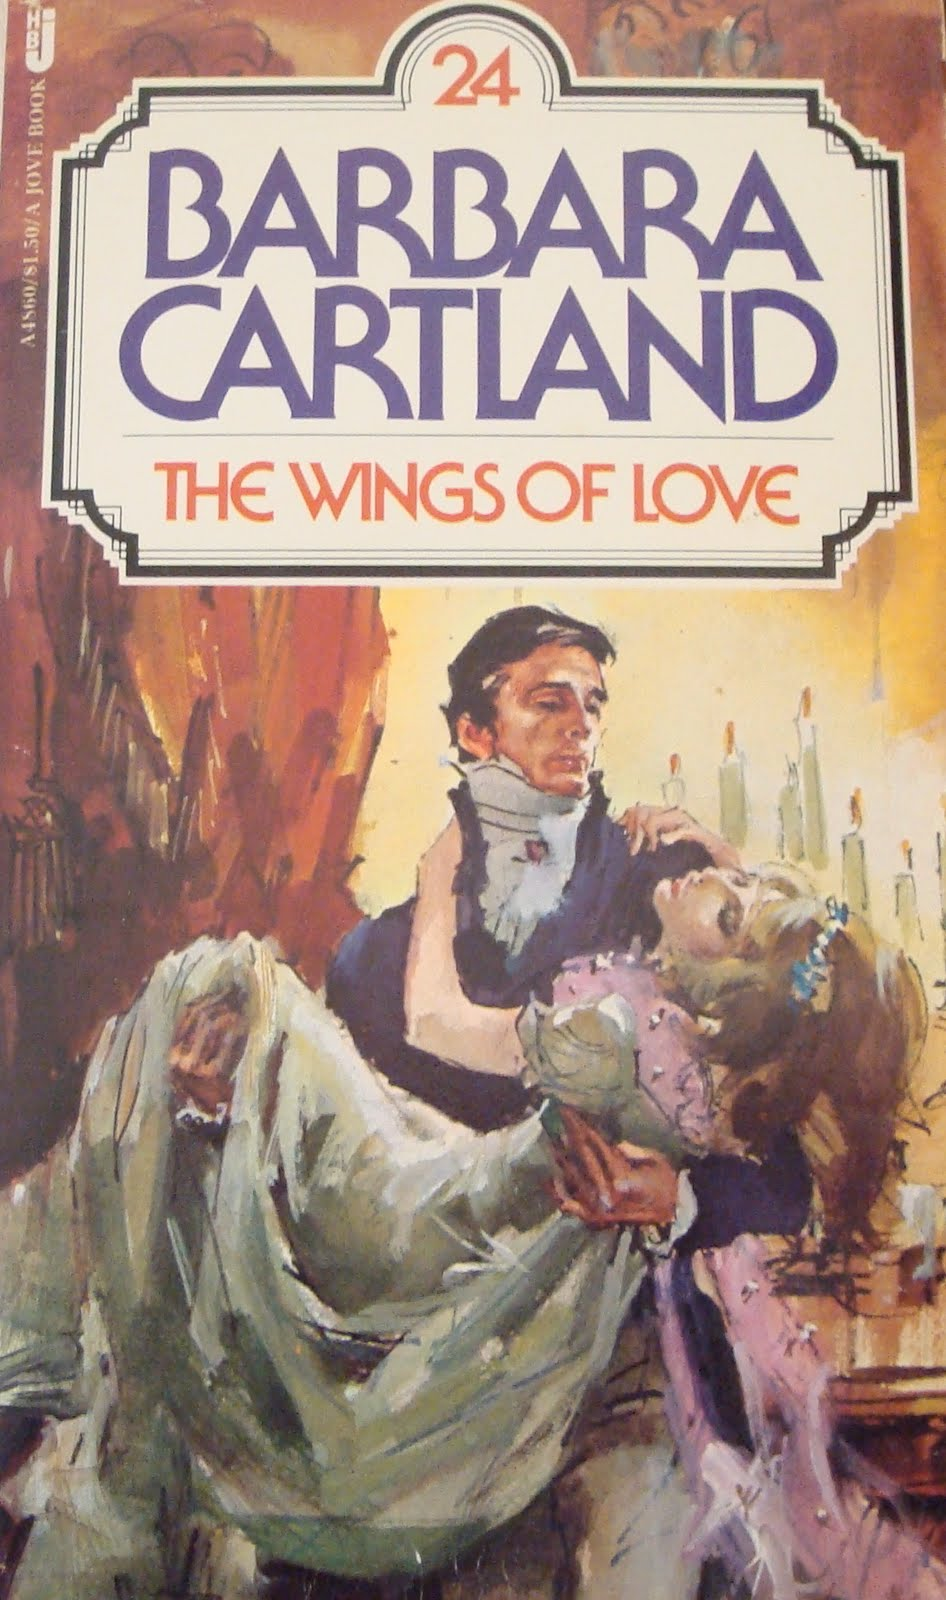 Something I Can T Quite Figure Out About Romance Cover Art